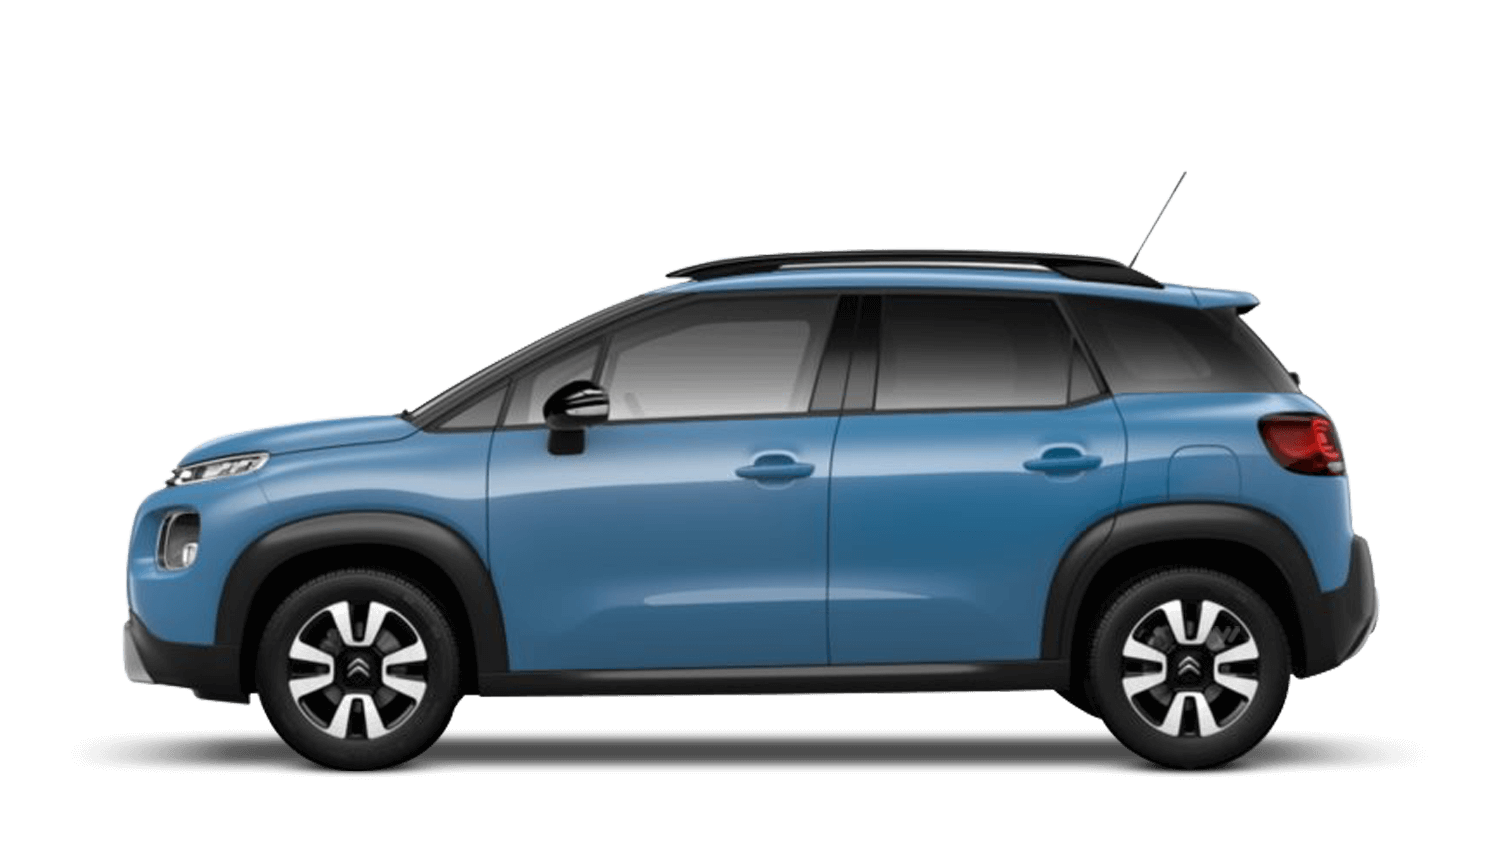 C3 Aircross SUV Business Offers